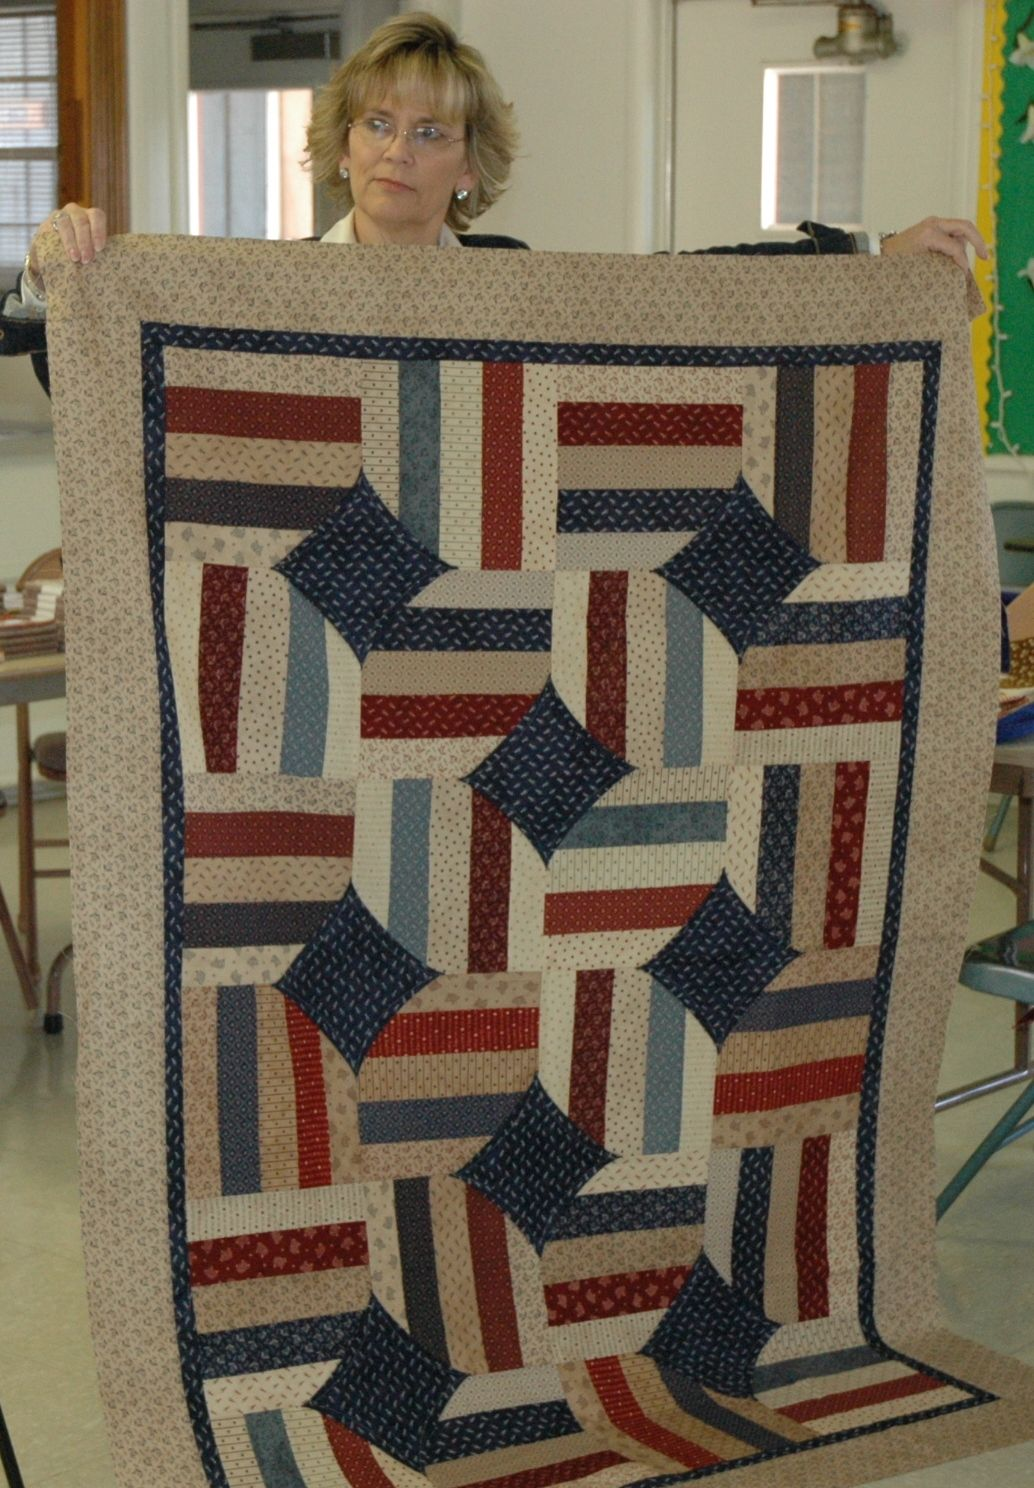 The Quilting Queen Online Blog: 5 AND 10 MINUTE BLOCKS | Quilts ... : free quilting tutorials online - Adamdwight.com